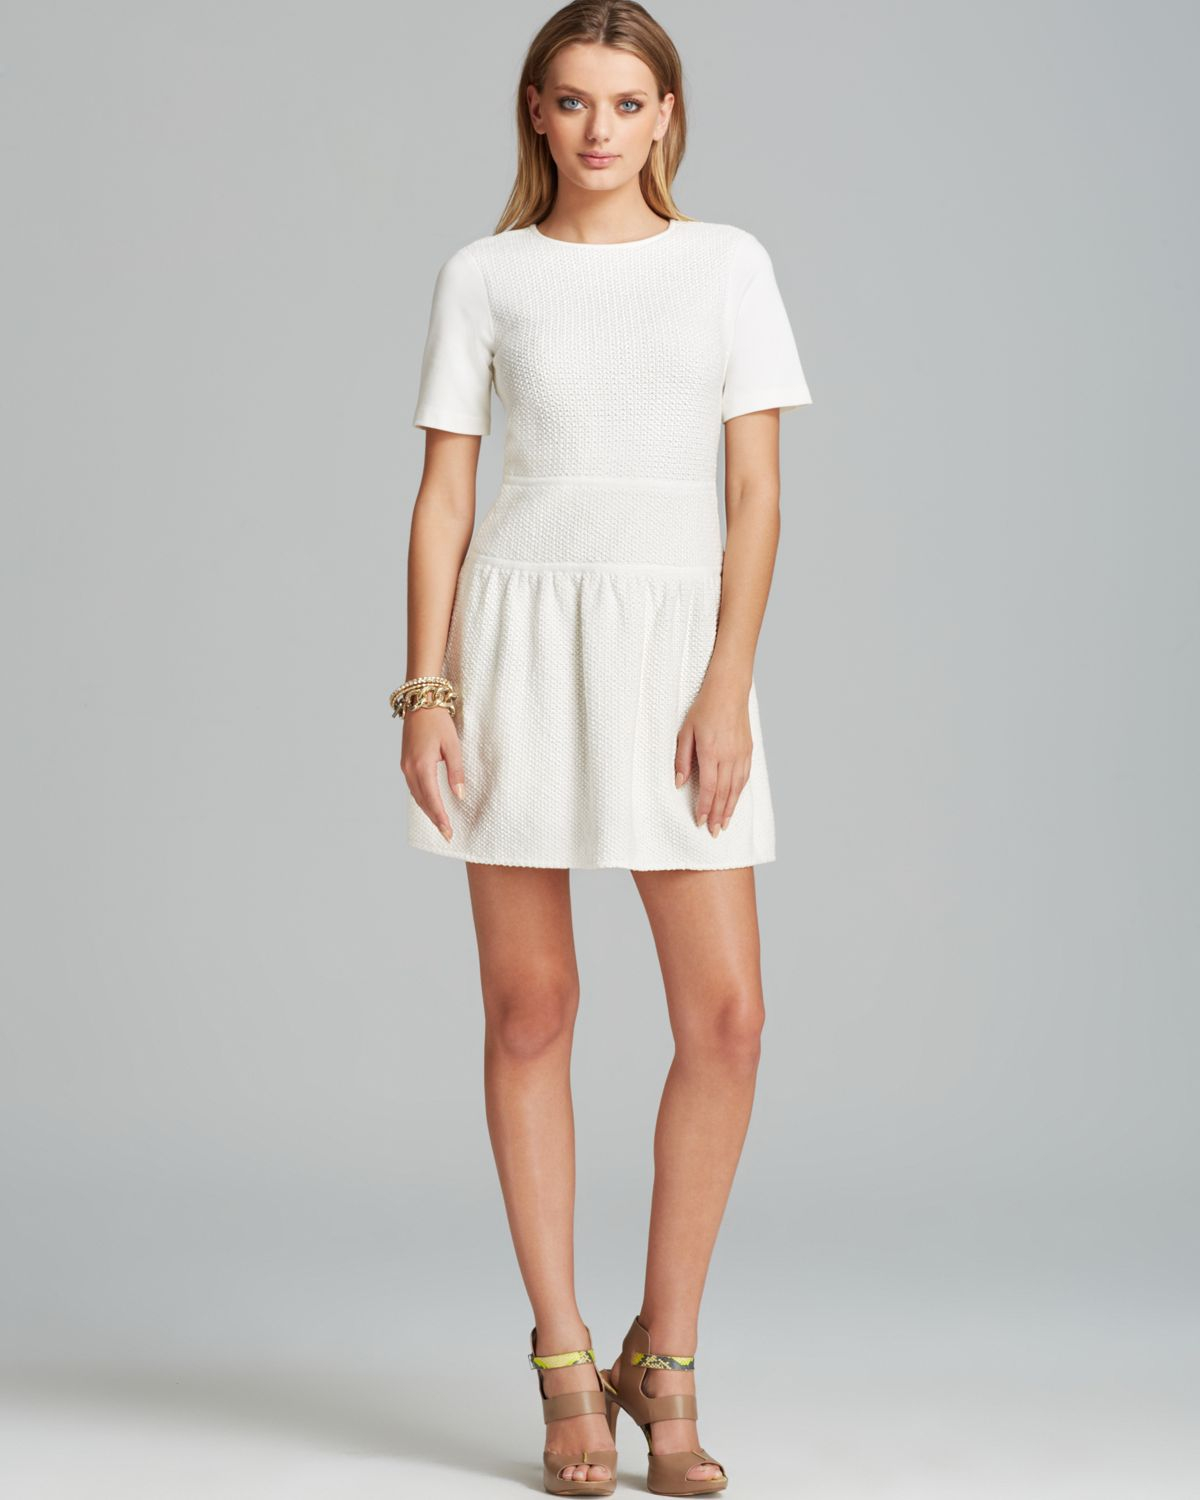 5192911dd35a Gallery. Previously sold at: Bloomingdale's · Women's Crochet Dresses